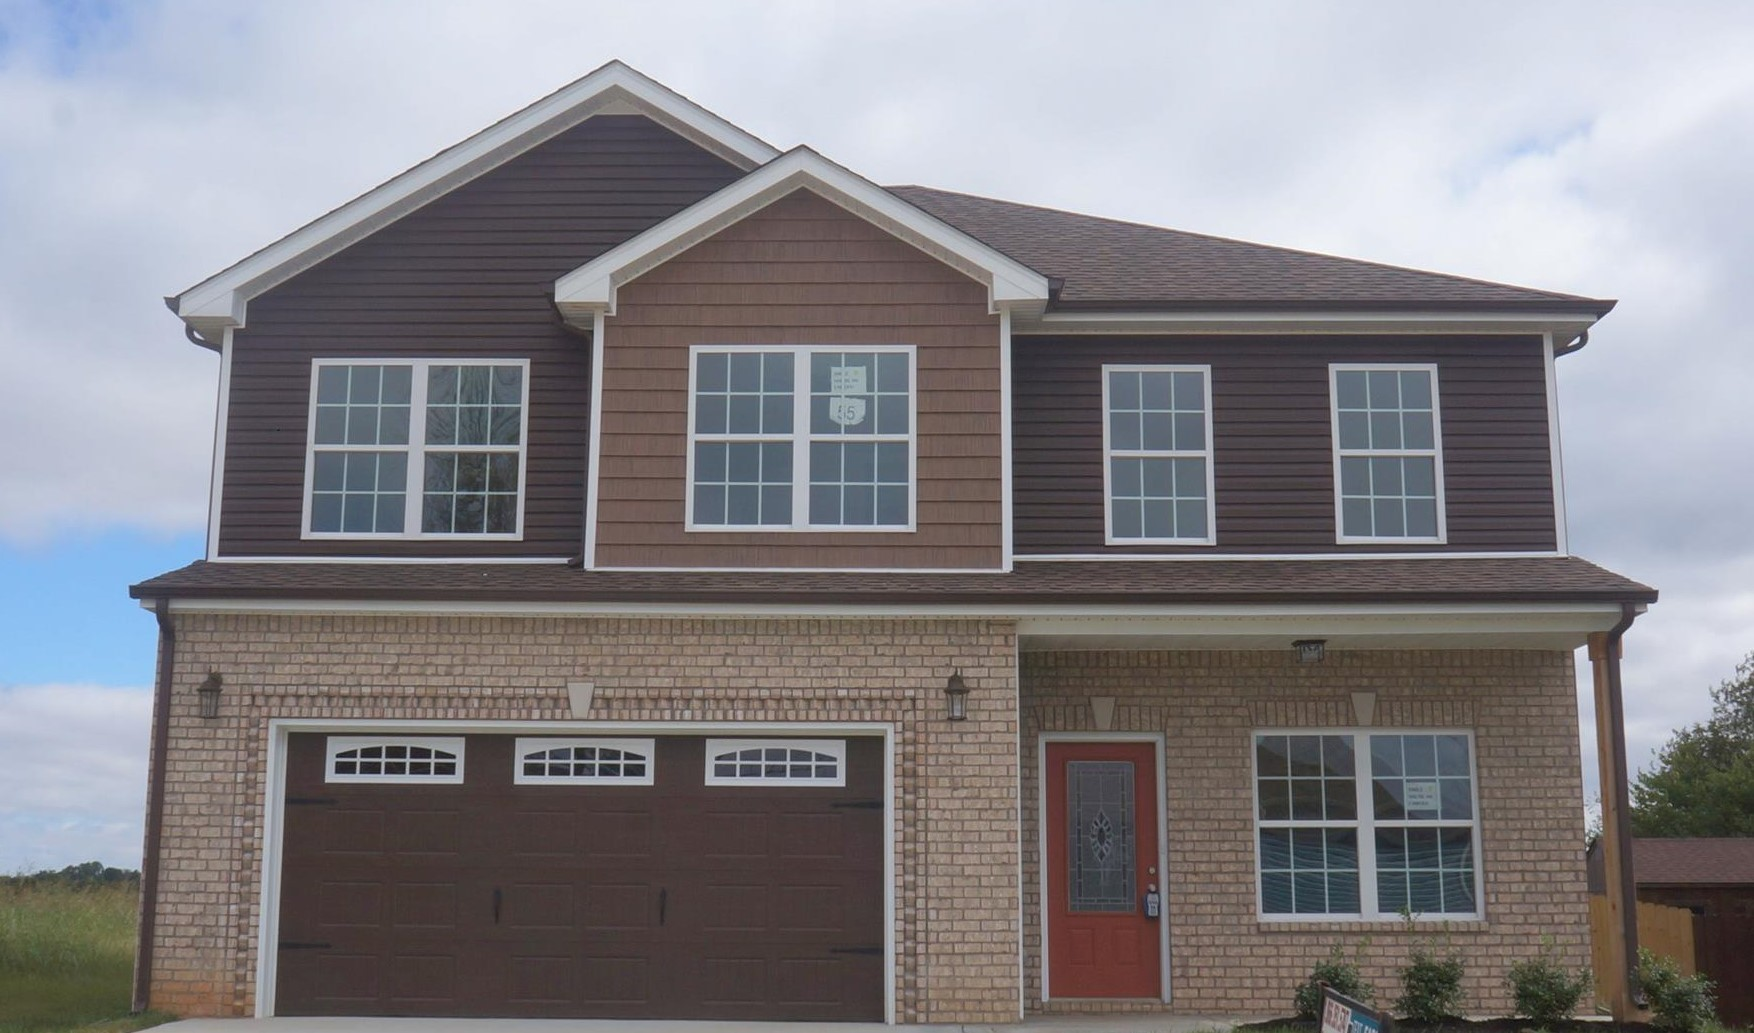 225 Union Camp Blvd Property Photo - Clarksville, TN real estate listing